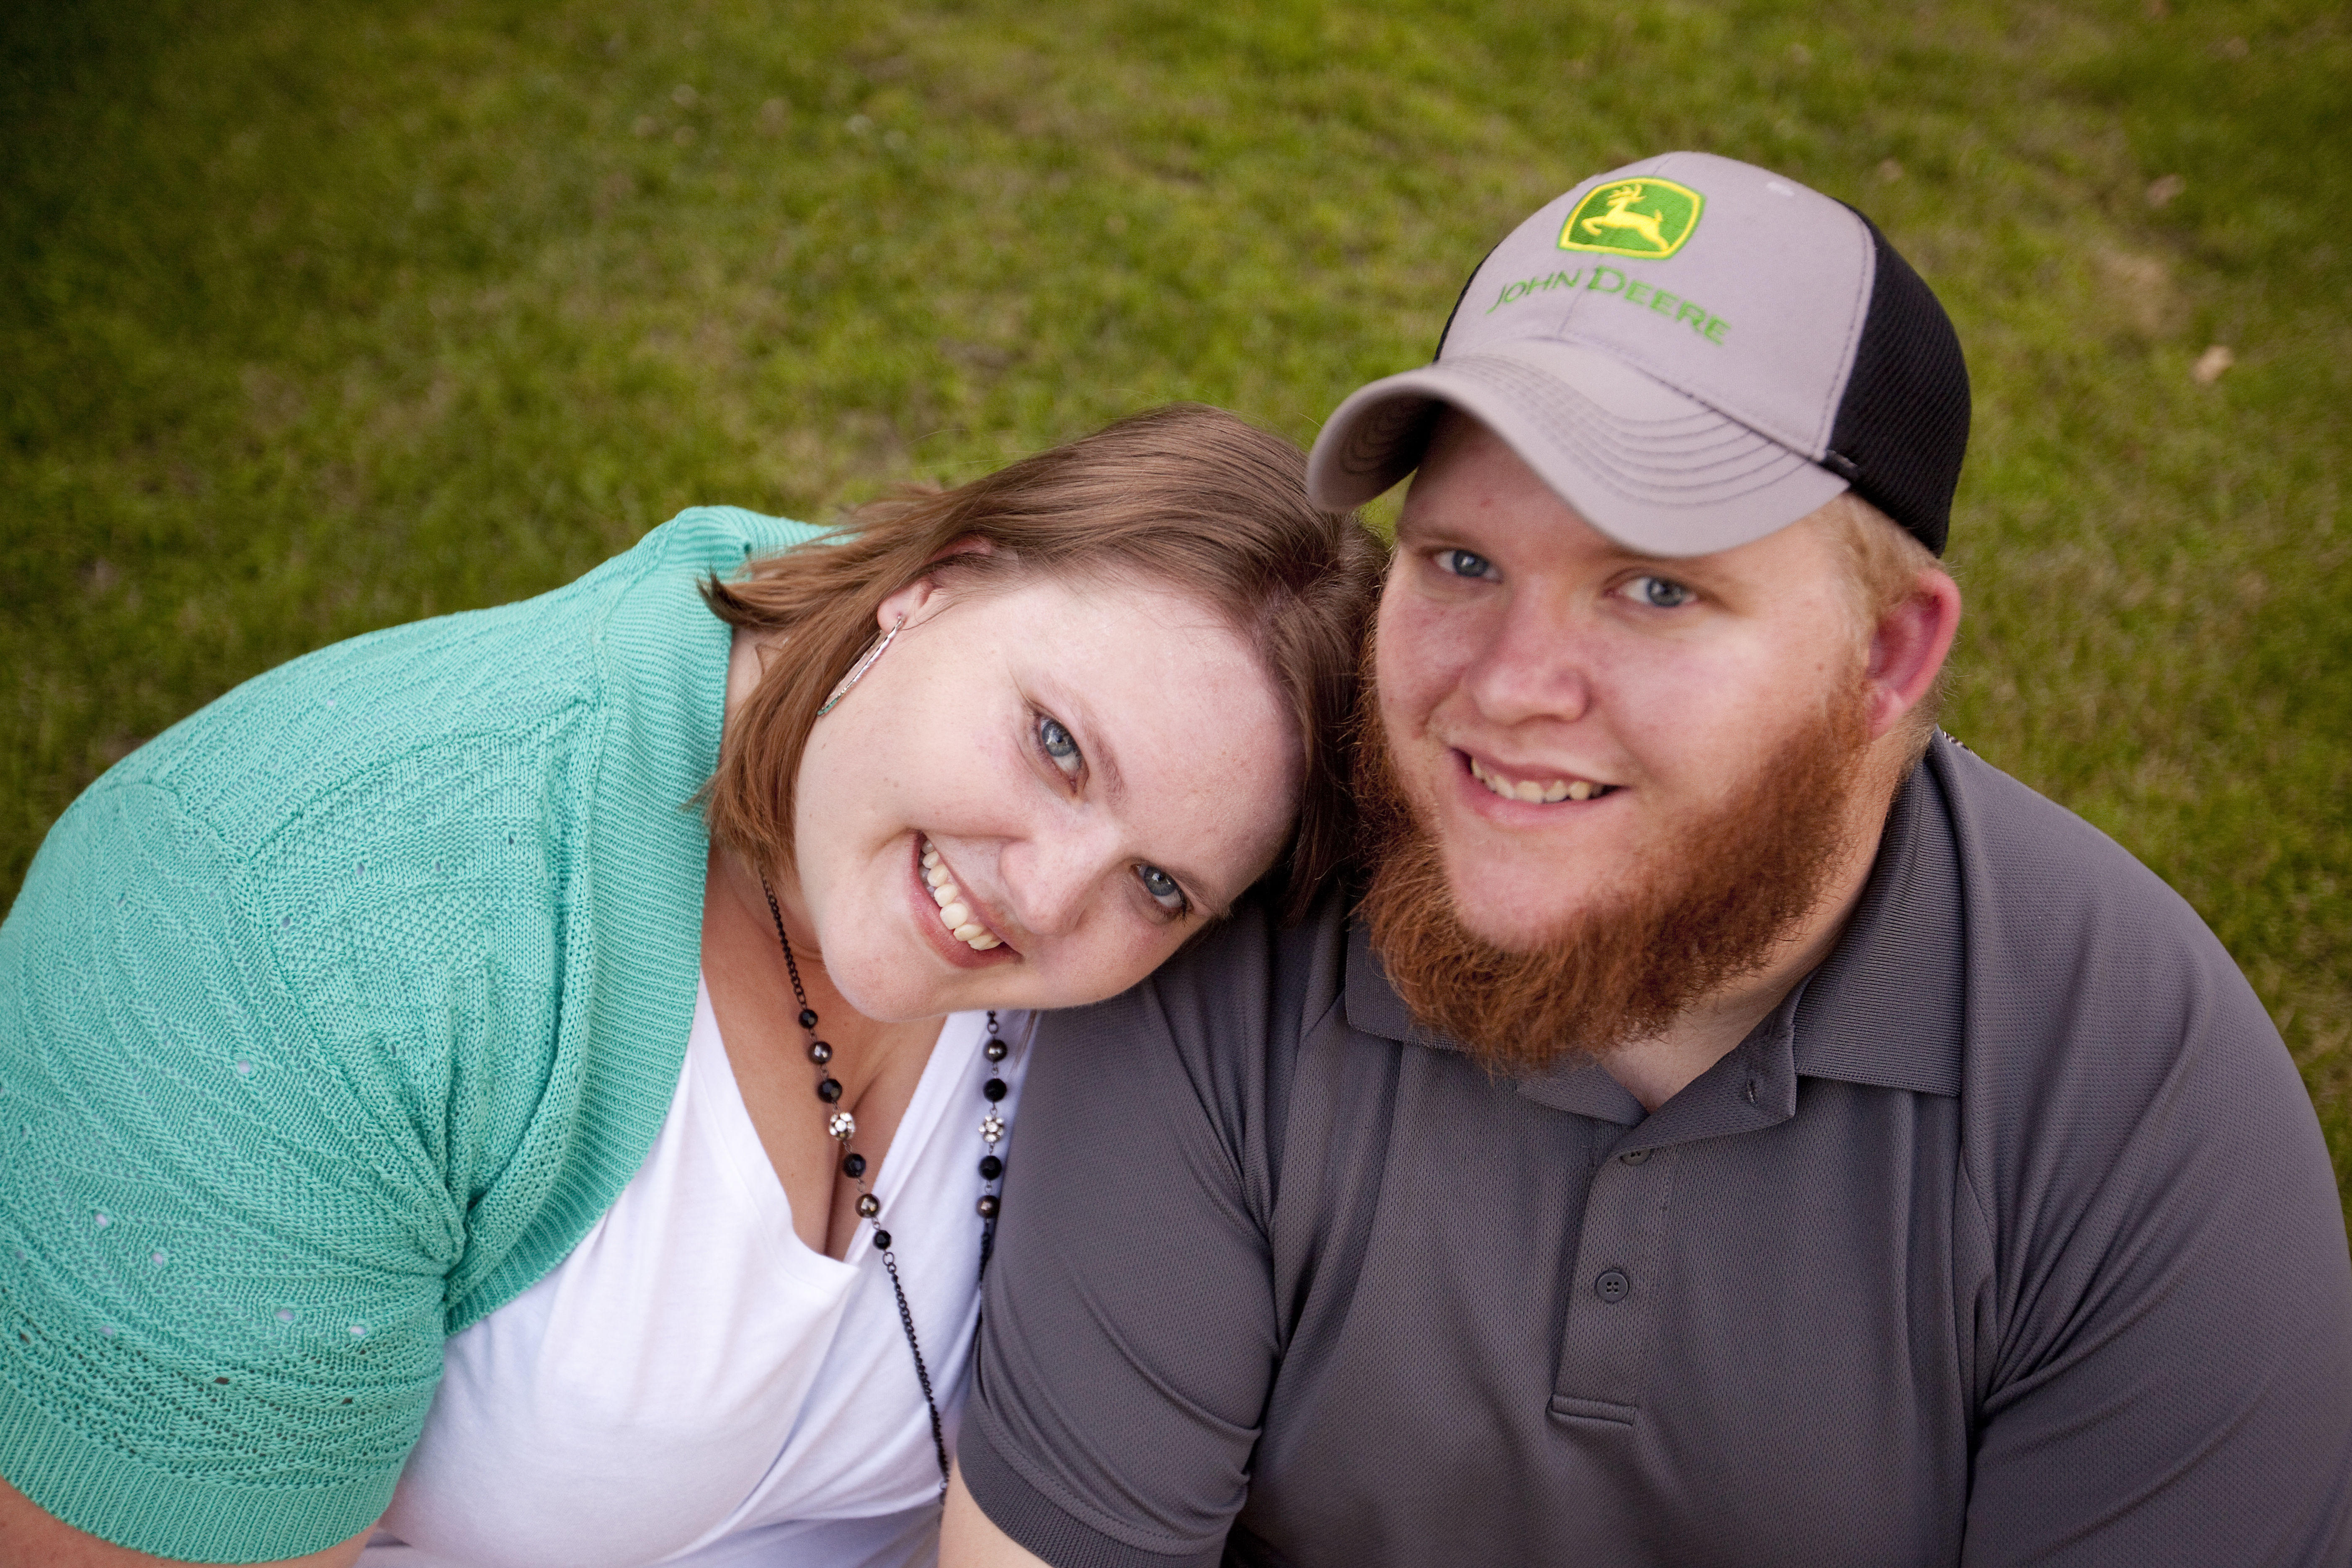 plattsmouth senior personals Thousands of 50+ singles join ourtime every day ourtime is the leading dating  site for people over 50 members of ourtime get access to exclusive ourtime.